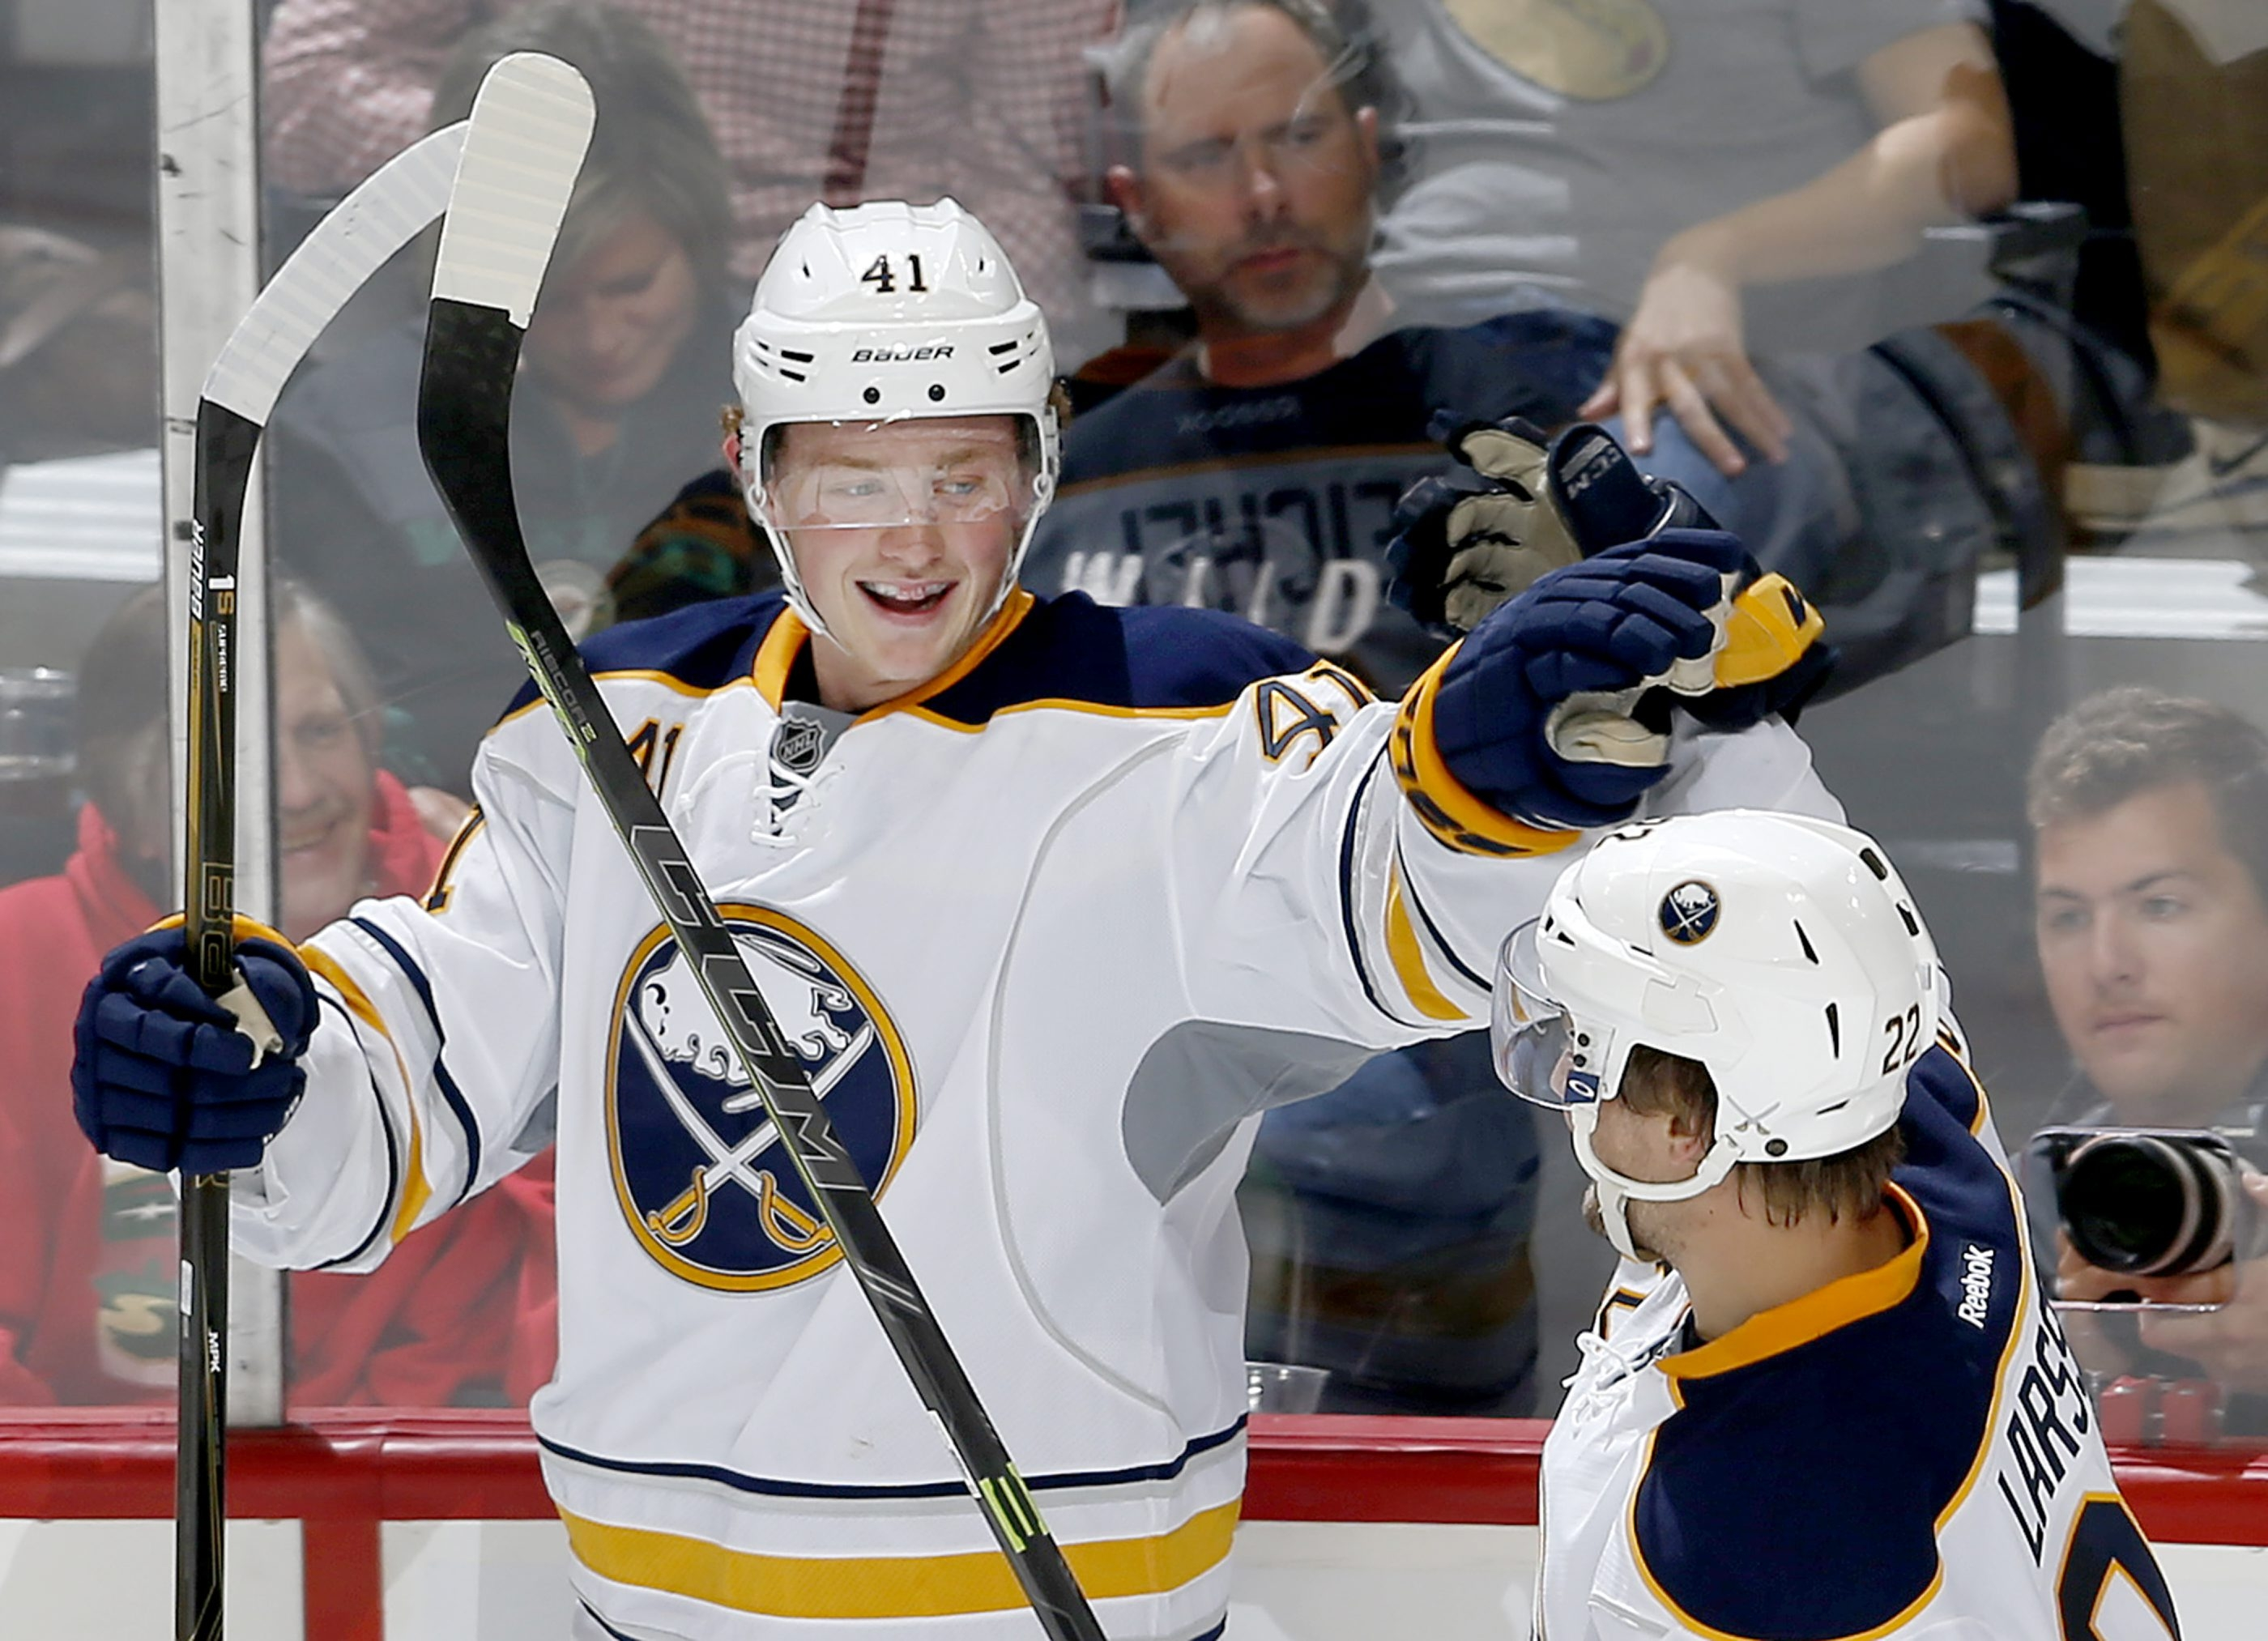 Jack Eichel got to experience the Toronto side of the rivalry Monday monring.